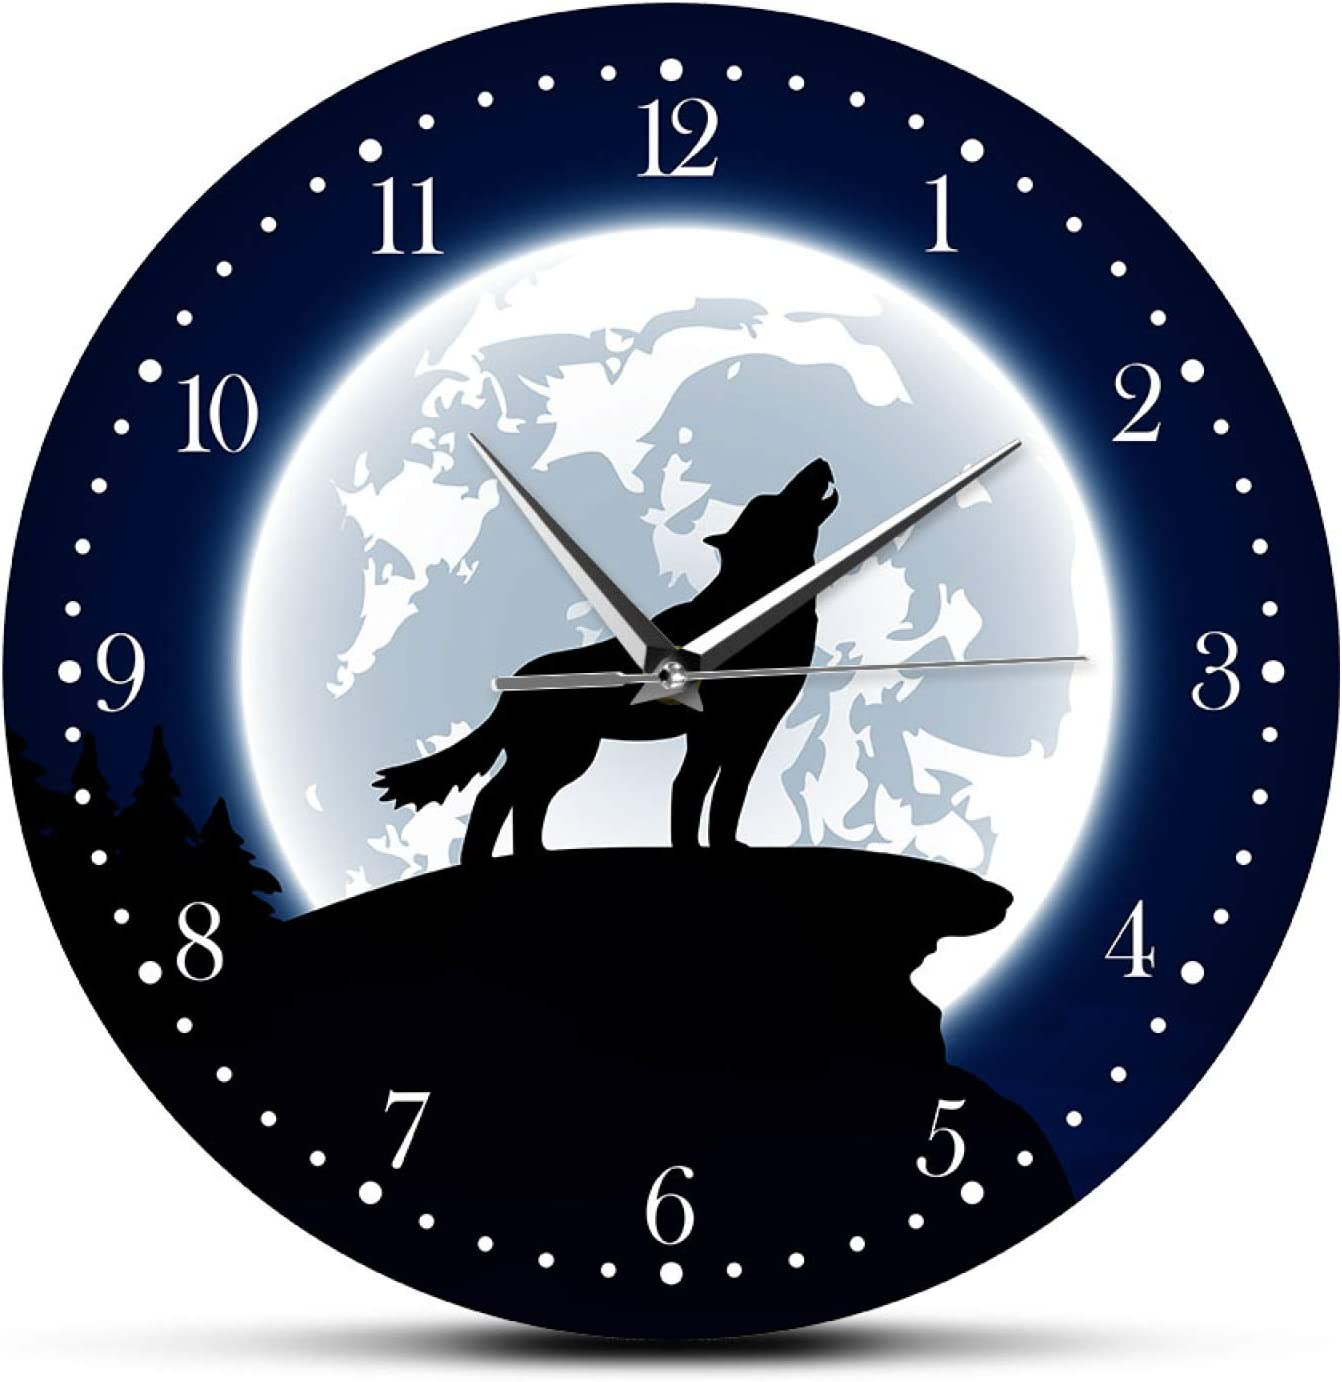 Wall Clock Wilderness Wolf 55% OFF price Decorative Moon with